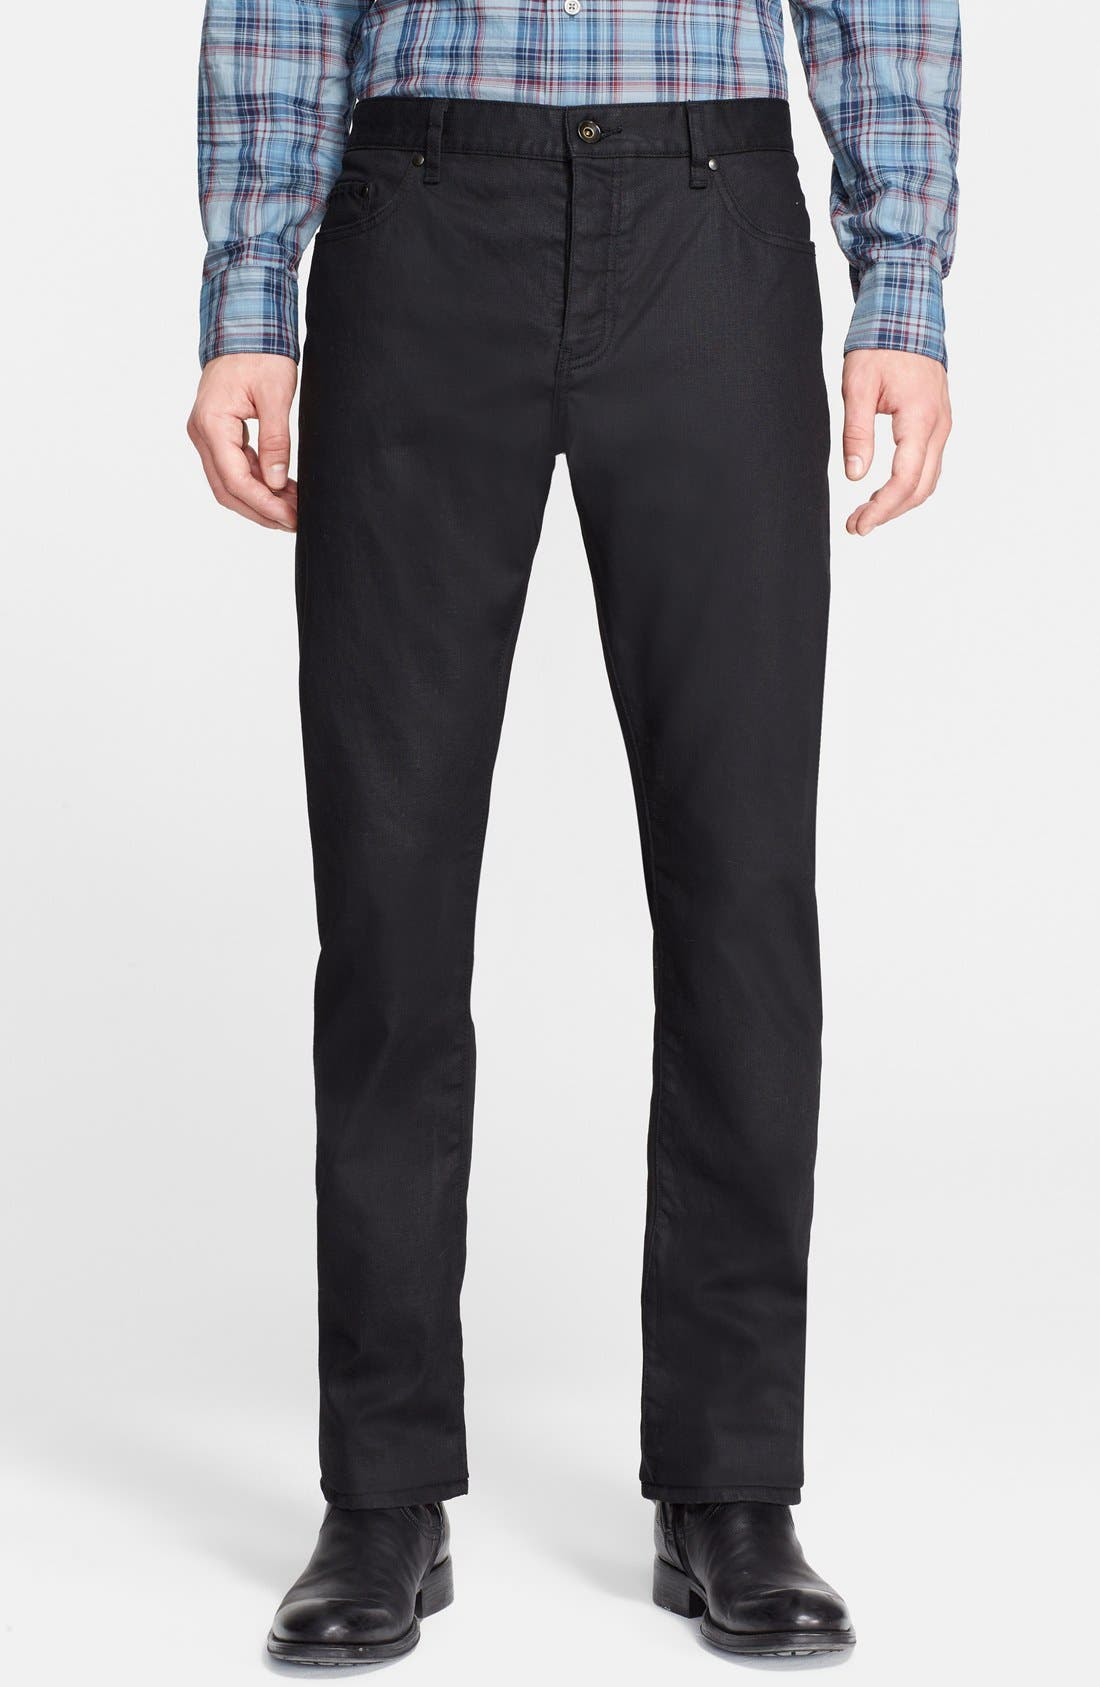 Main Image - John Varvatos Collection Slim Fit Jeans (Ink)